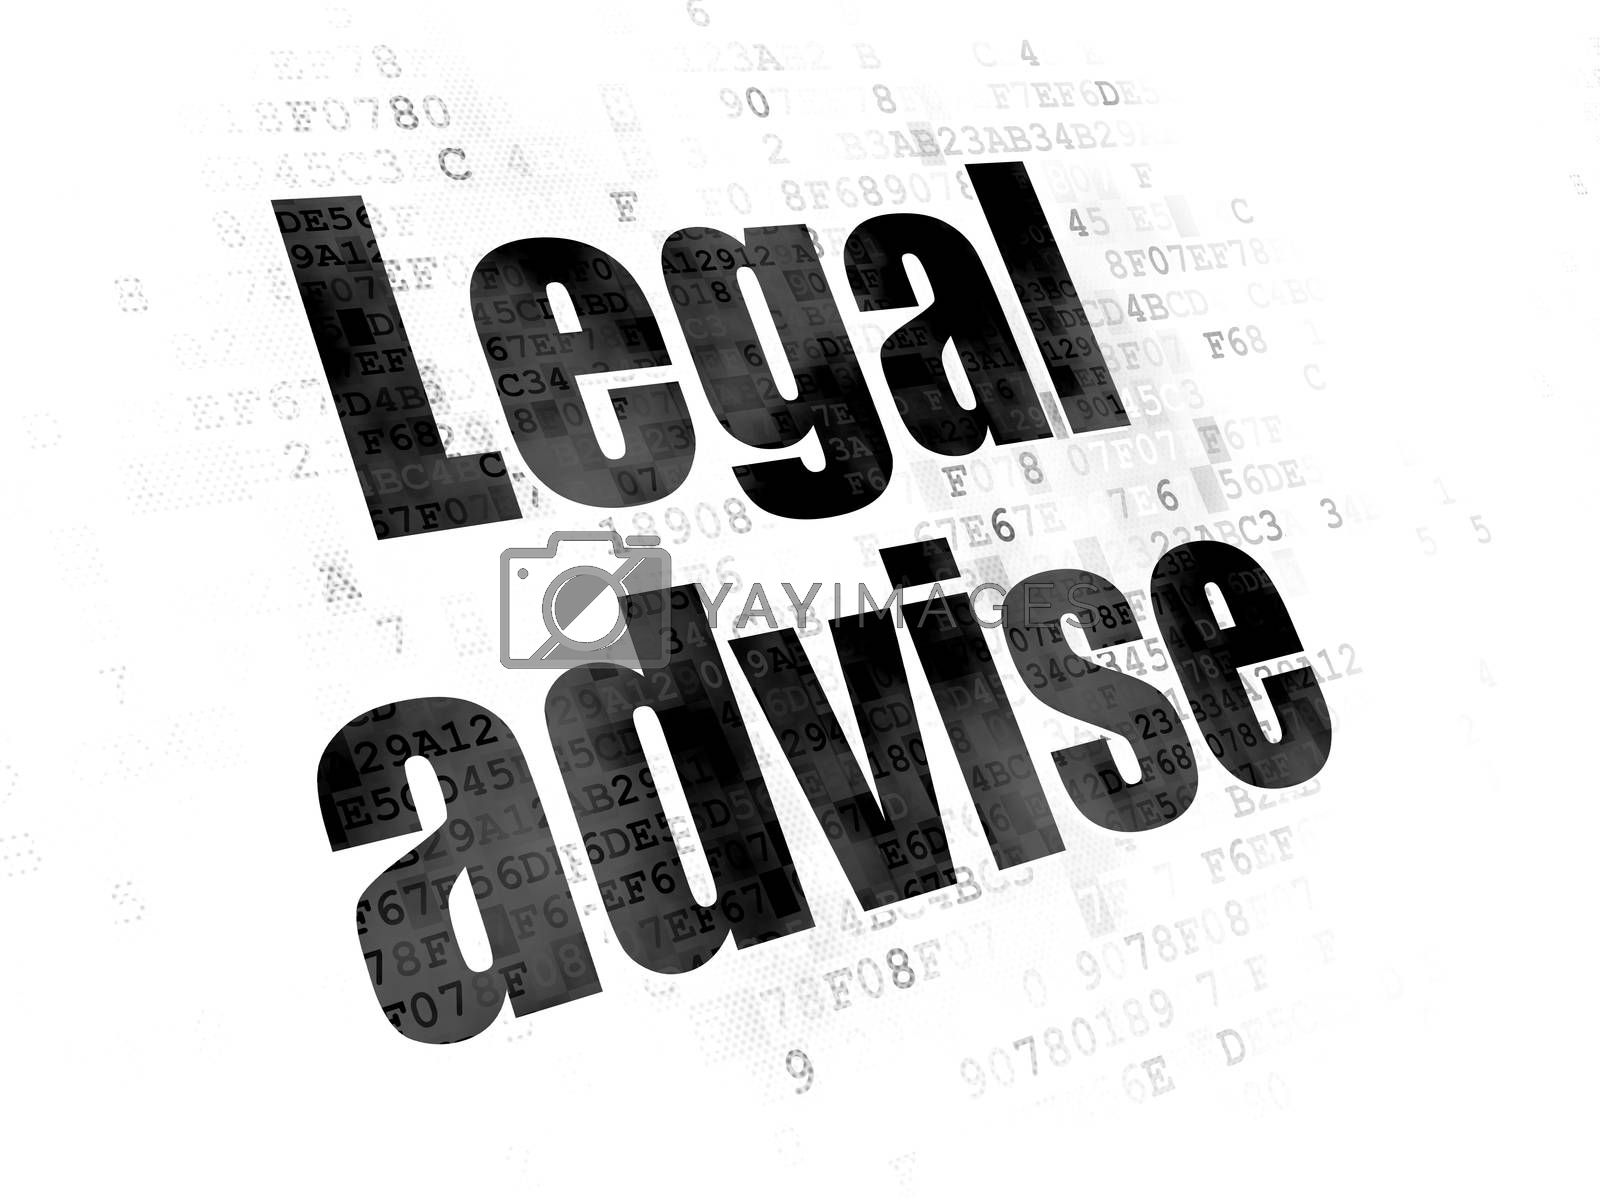 Law concept: Pixelated black text Legal Advise on Digital background